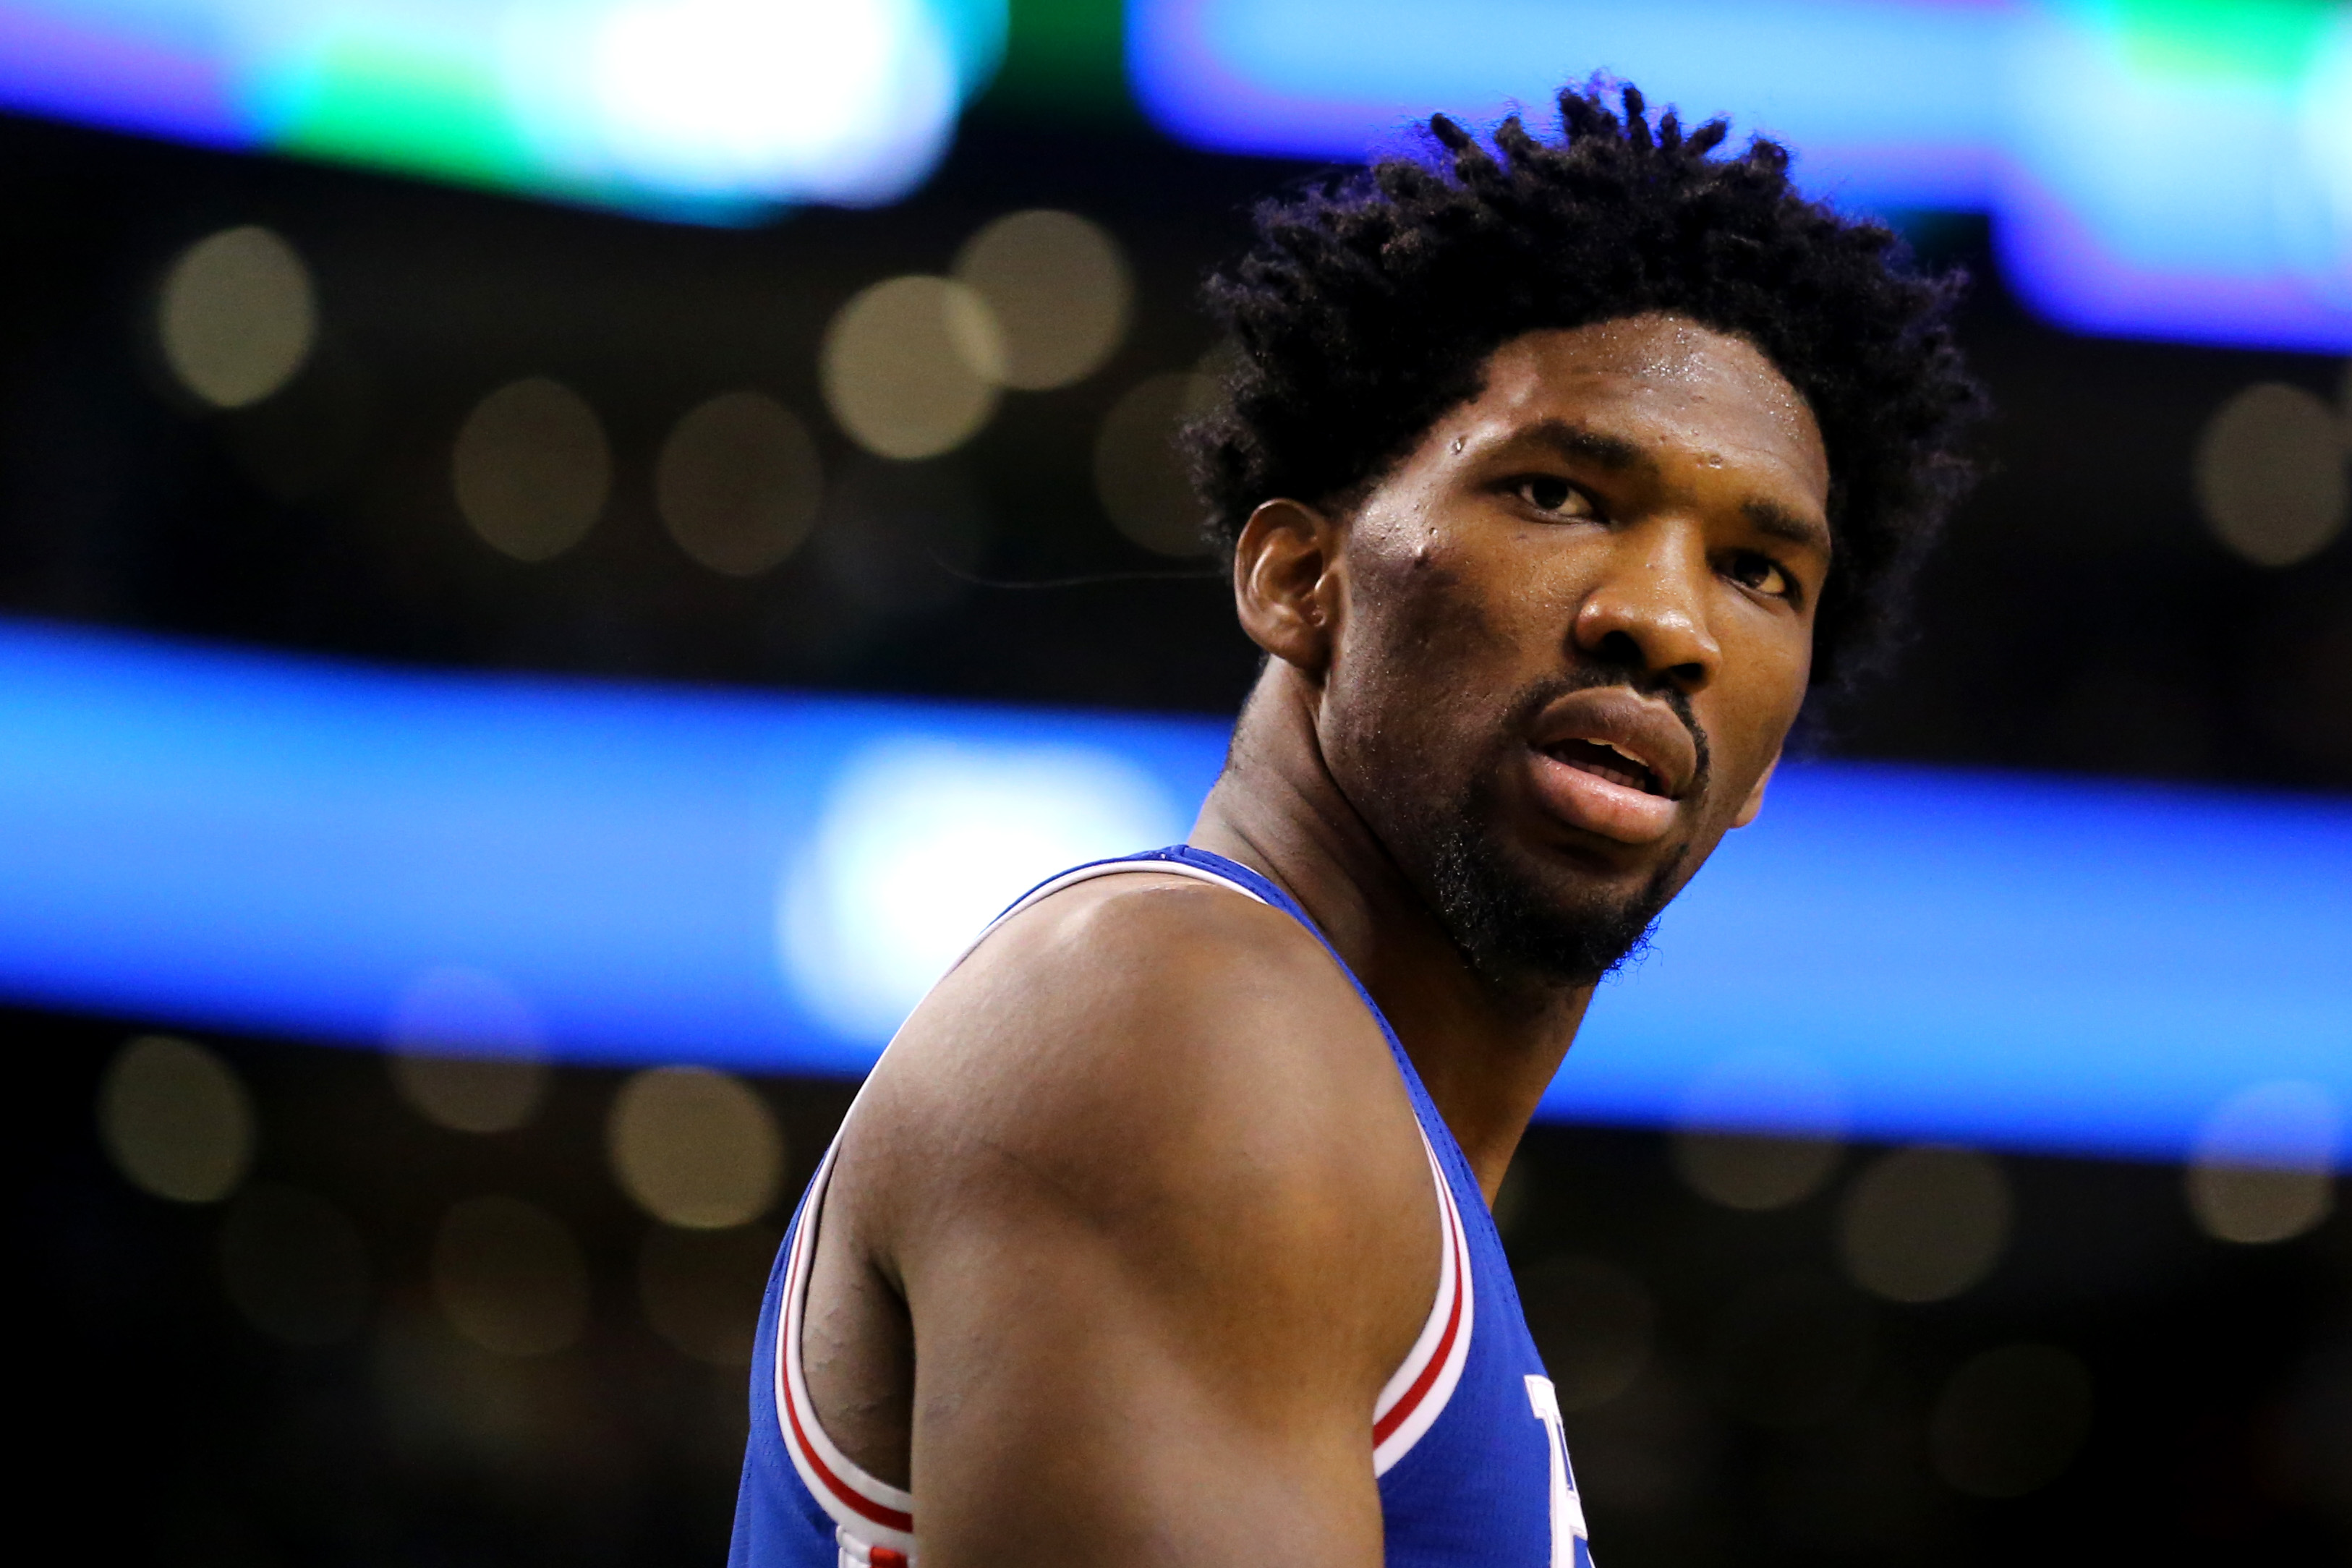 With No. 1 draft pick, Sixers now say they 'control our circumstances'